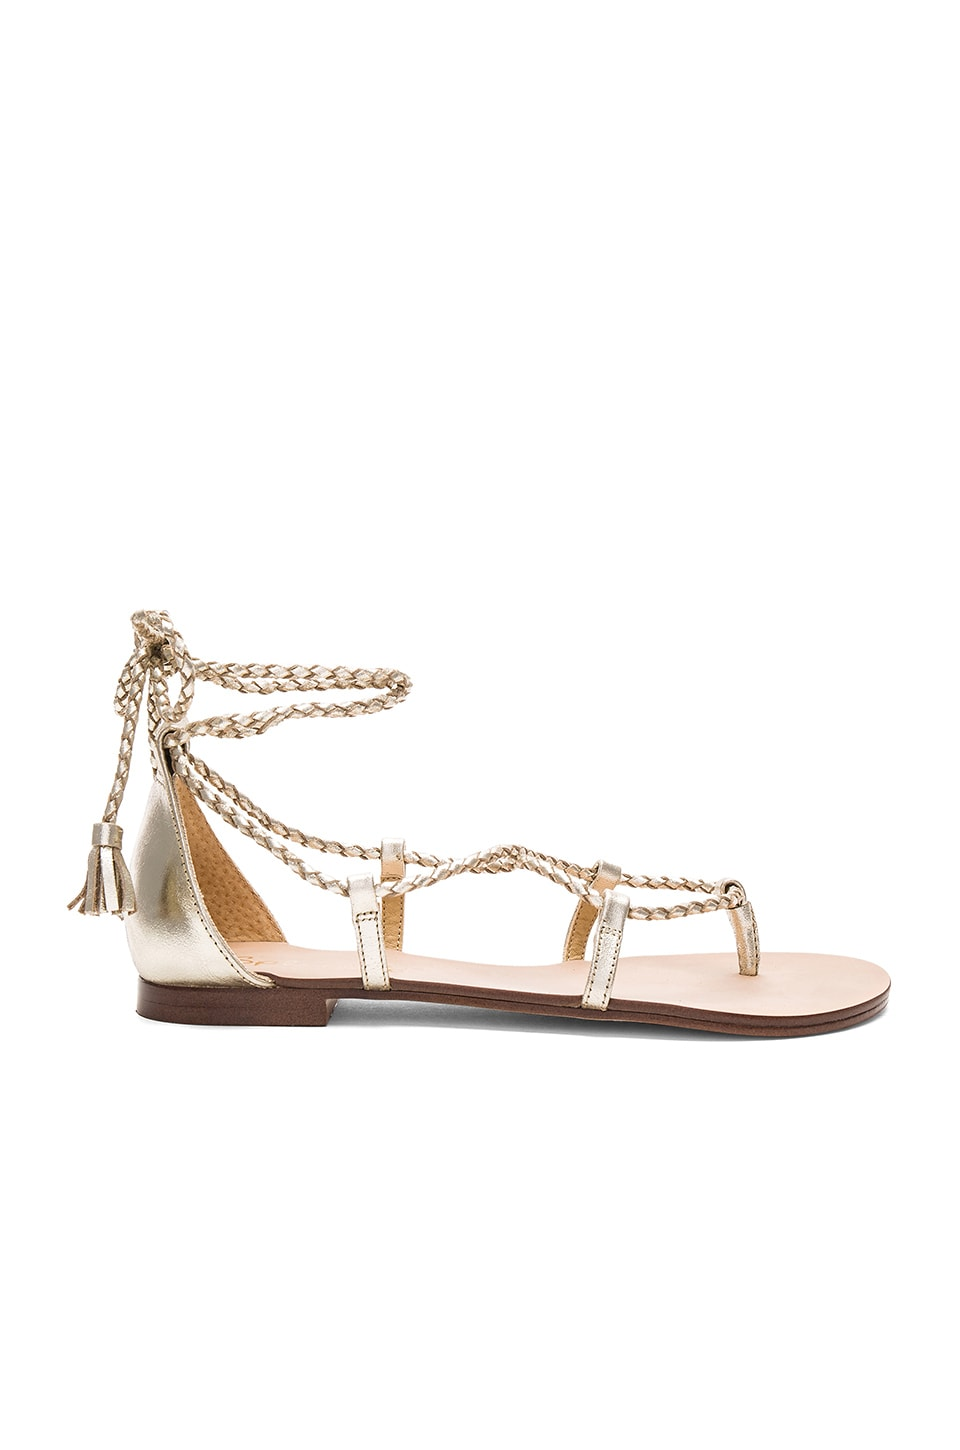 Splendid Cora Sandal in Gold